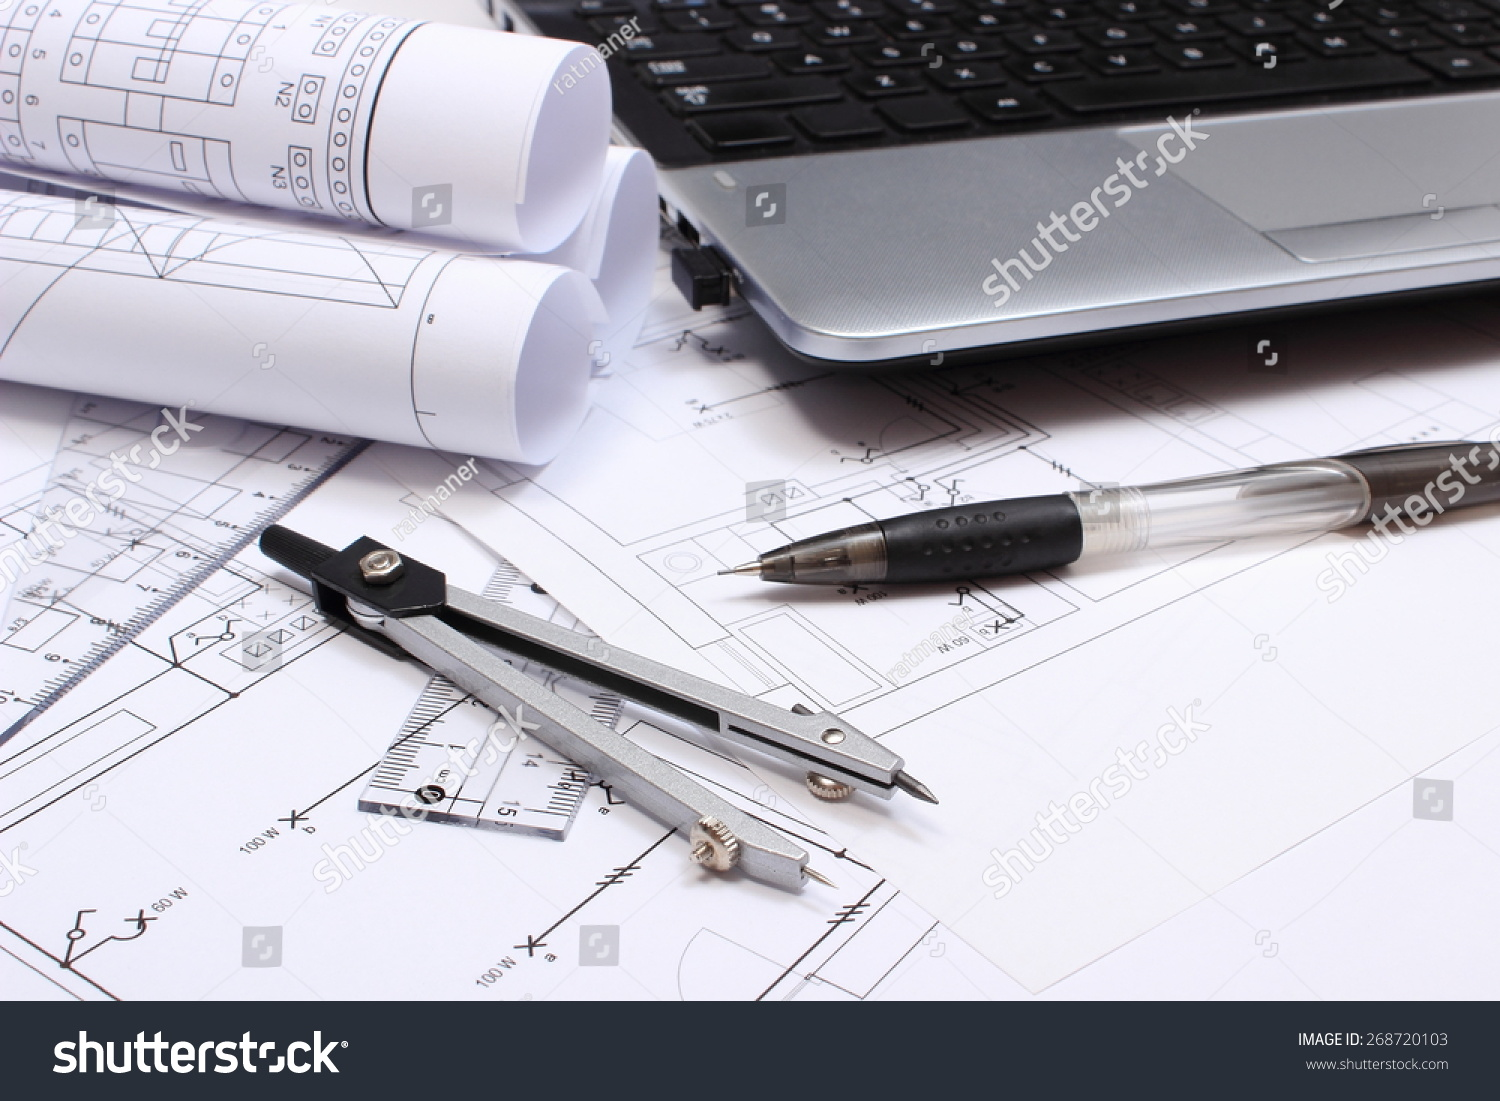 hight resolution of rolls of electrical diagrams construction drawings of house accessories for drawing and laptop